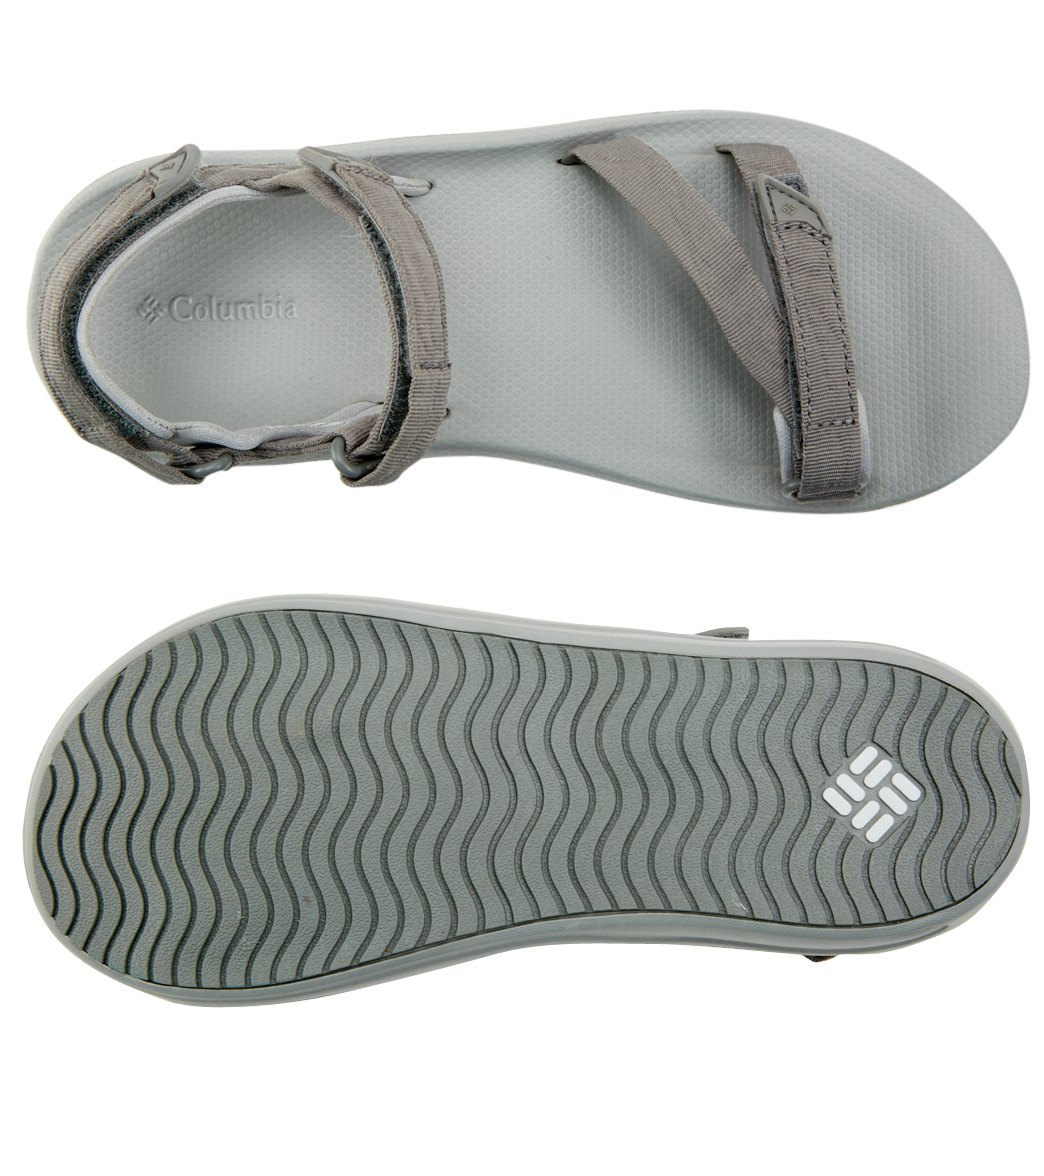 da519e6dfb91 Columbia Women s Big Water Sandal at SwimOutlet.com - Free Shipping